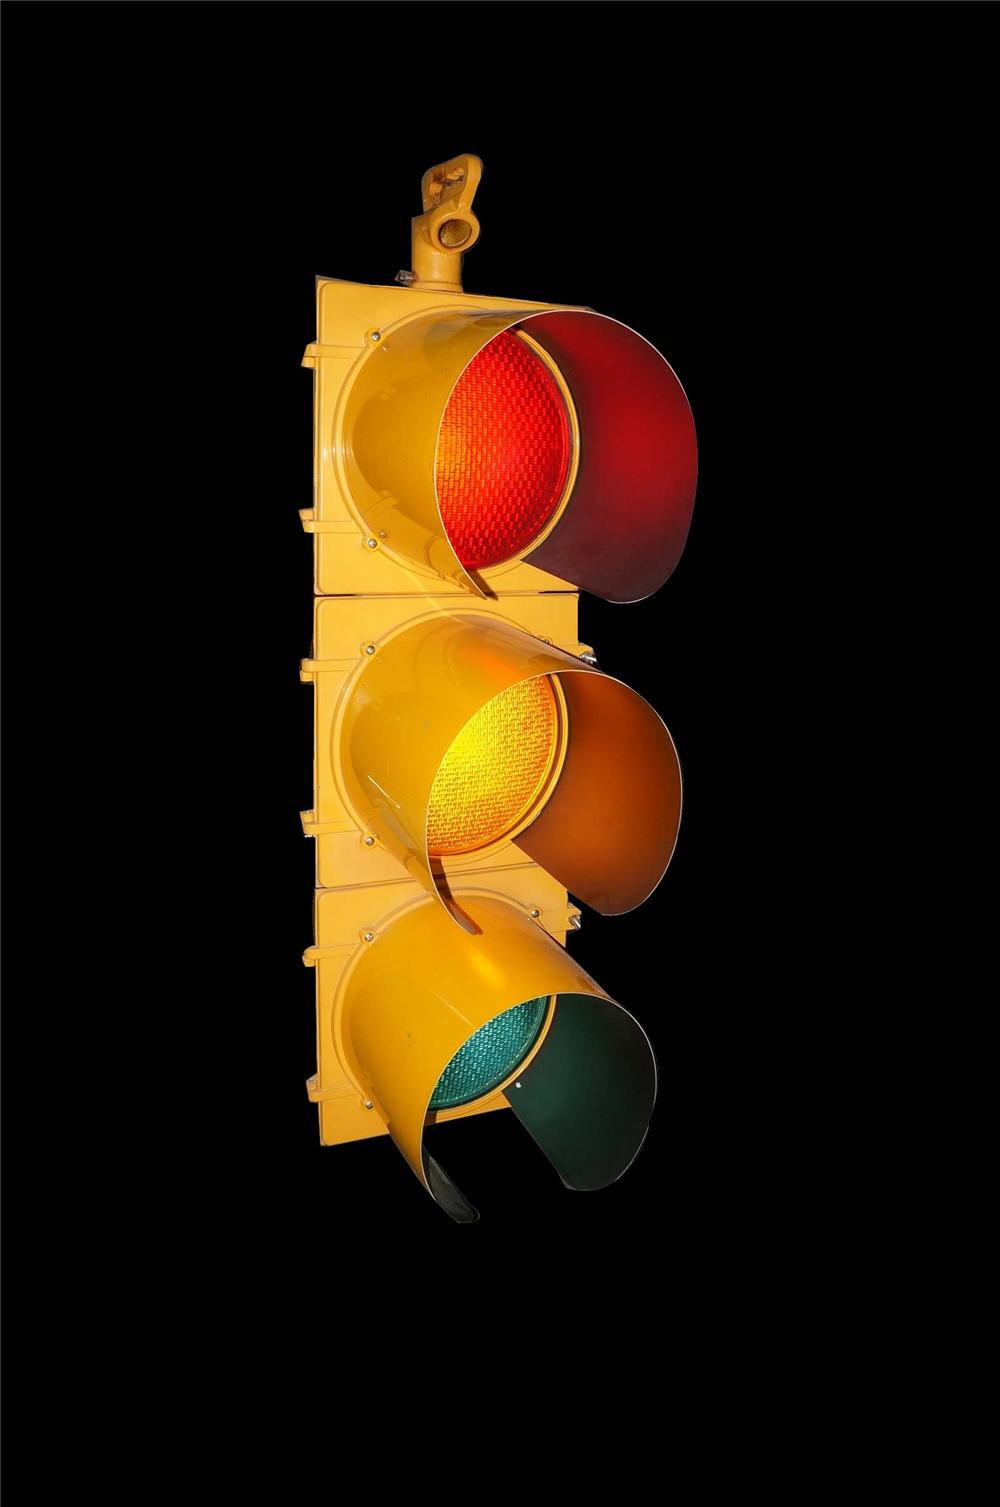 Neat vintage municipal traffic light. Lights and works perfe - 130765 for Real Traffic Lights  300lyp